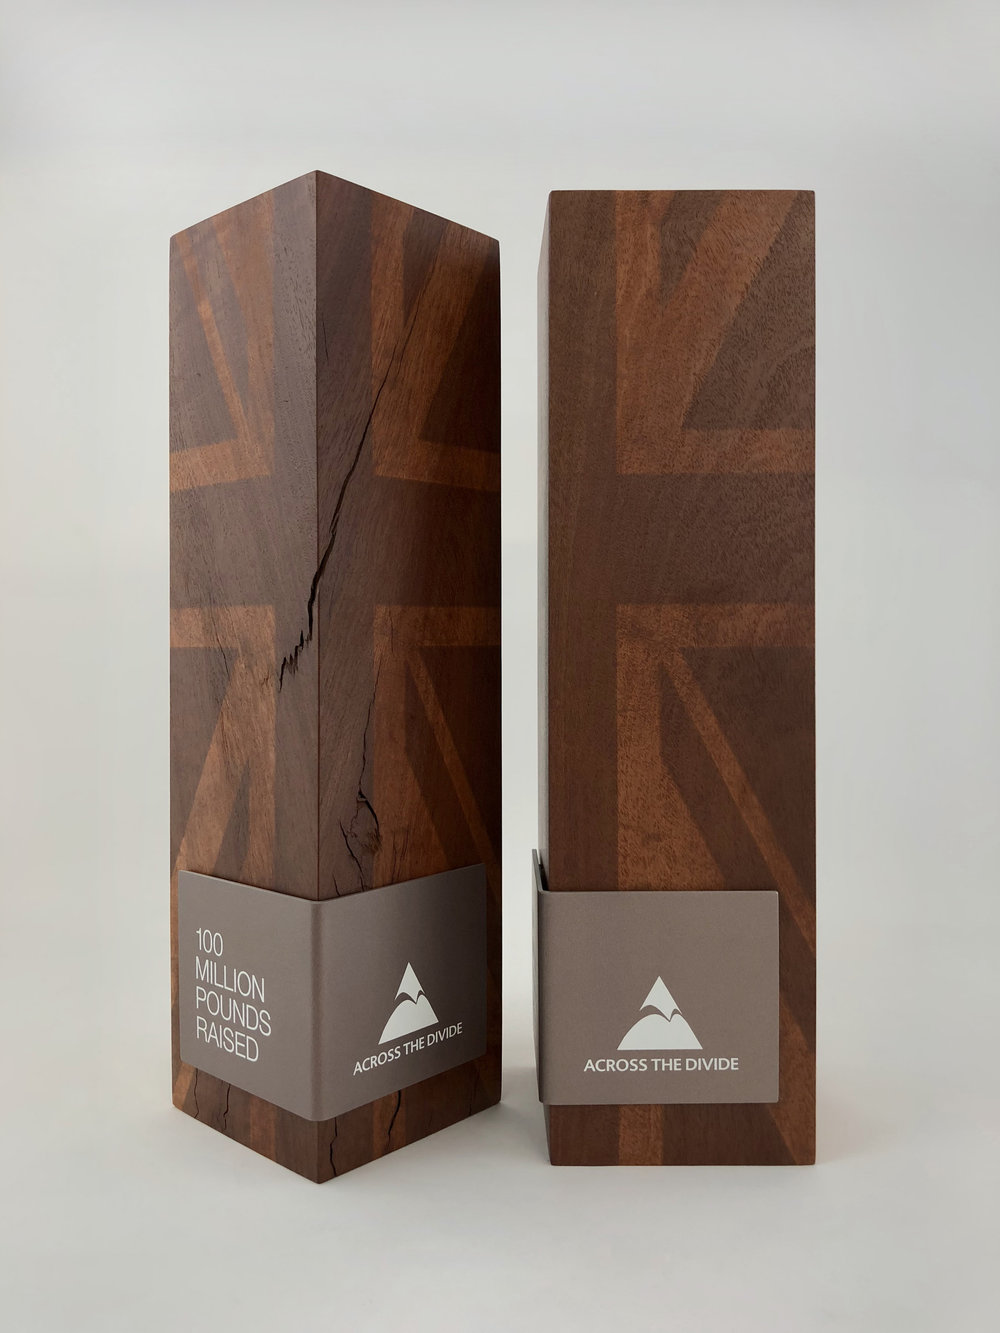 across-the-divide-awards-timber-trophy-04.jpg